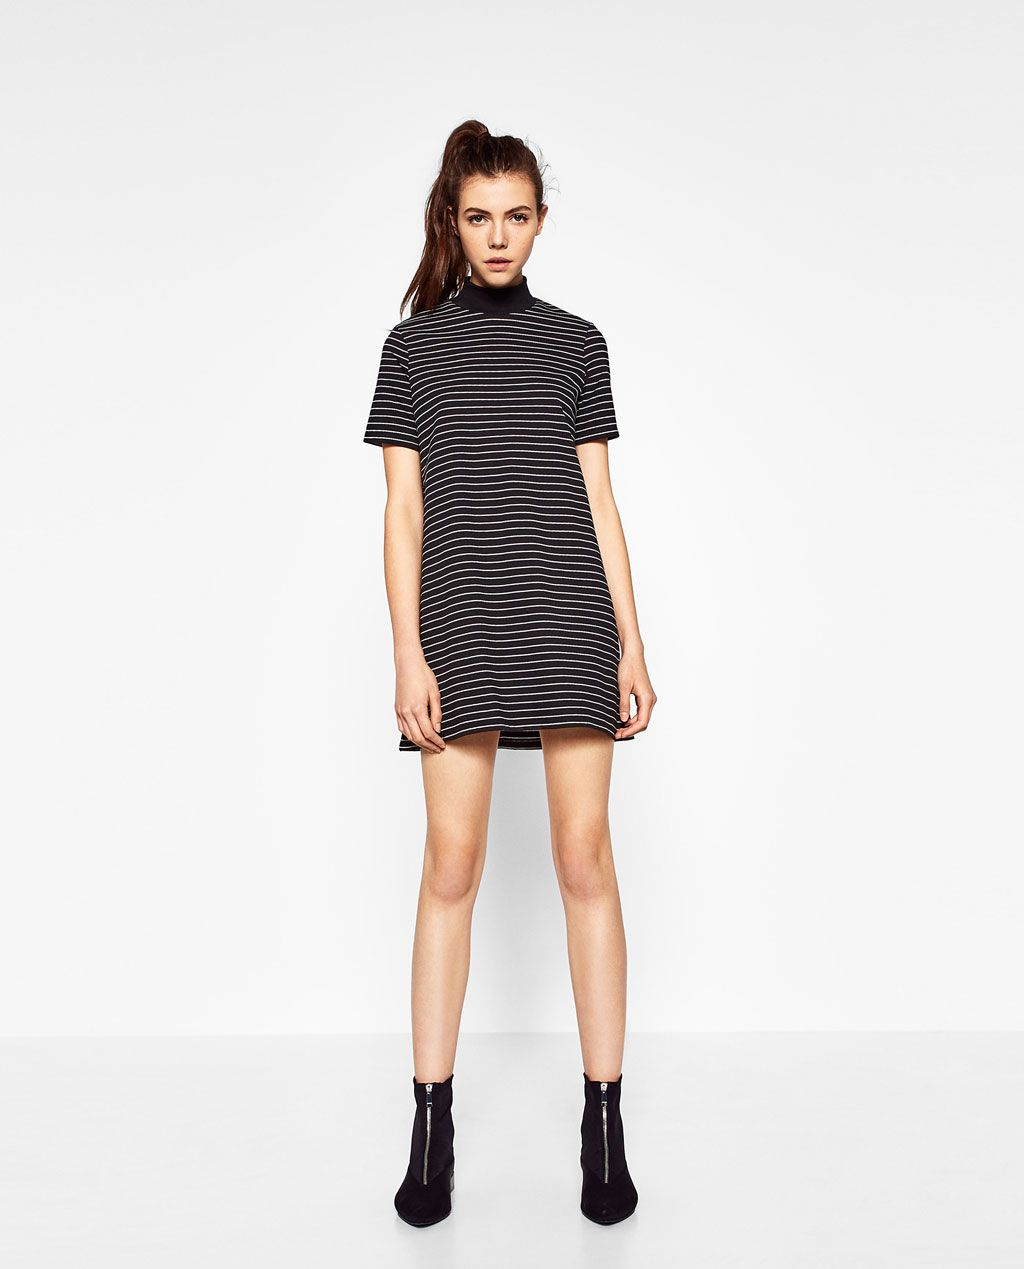 Black turtleneck dress zara